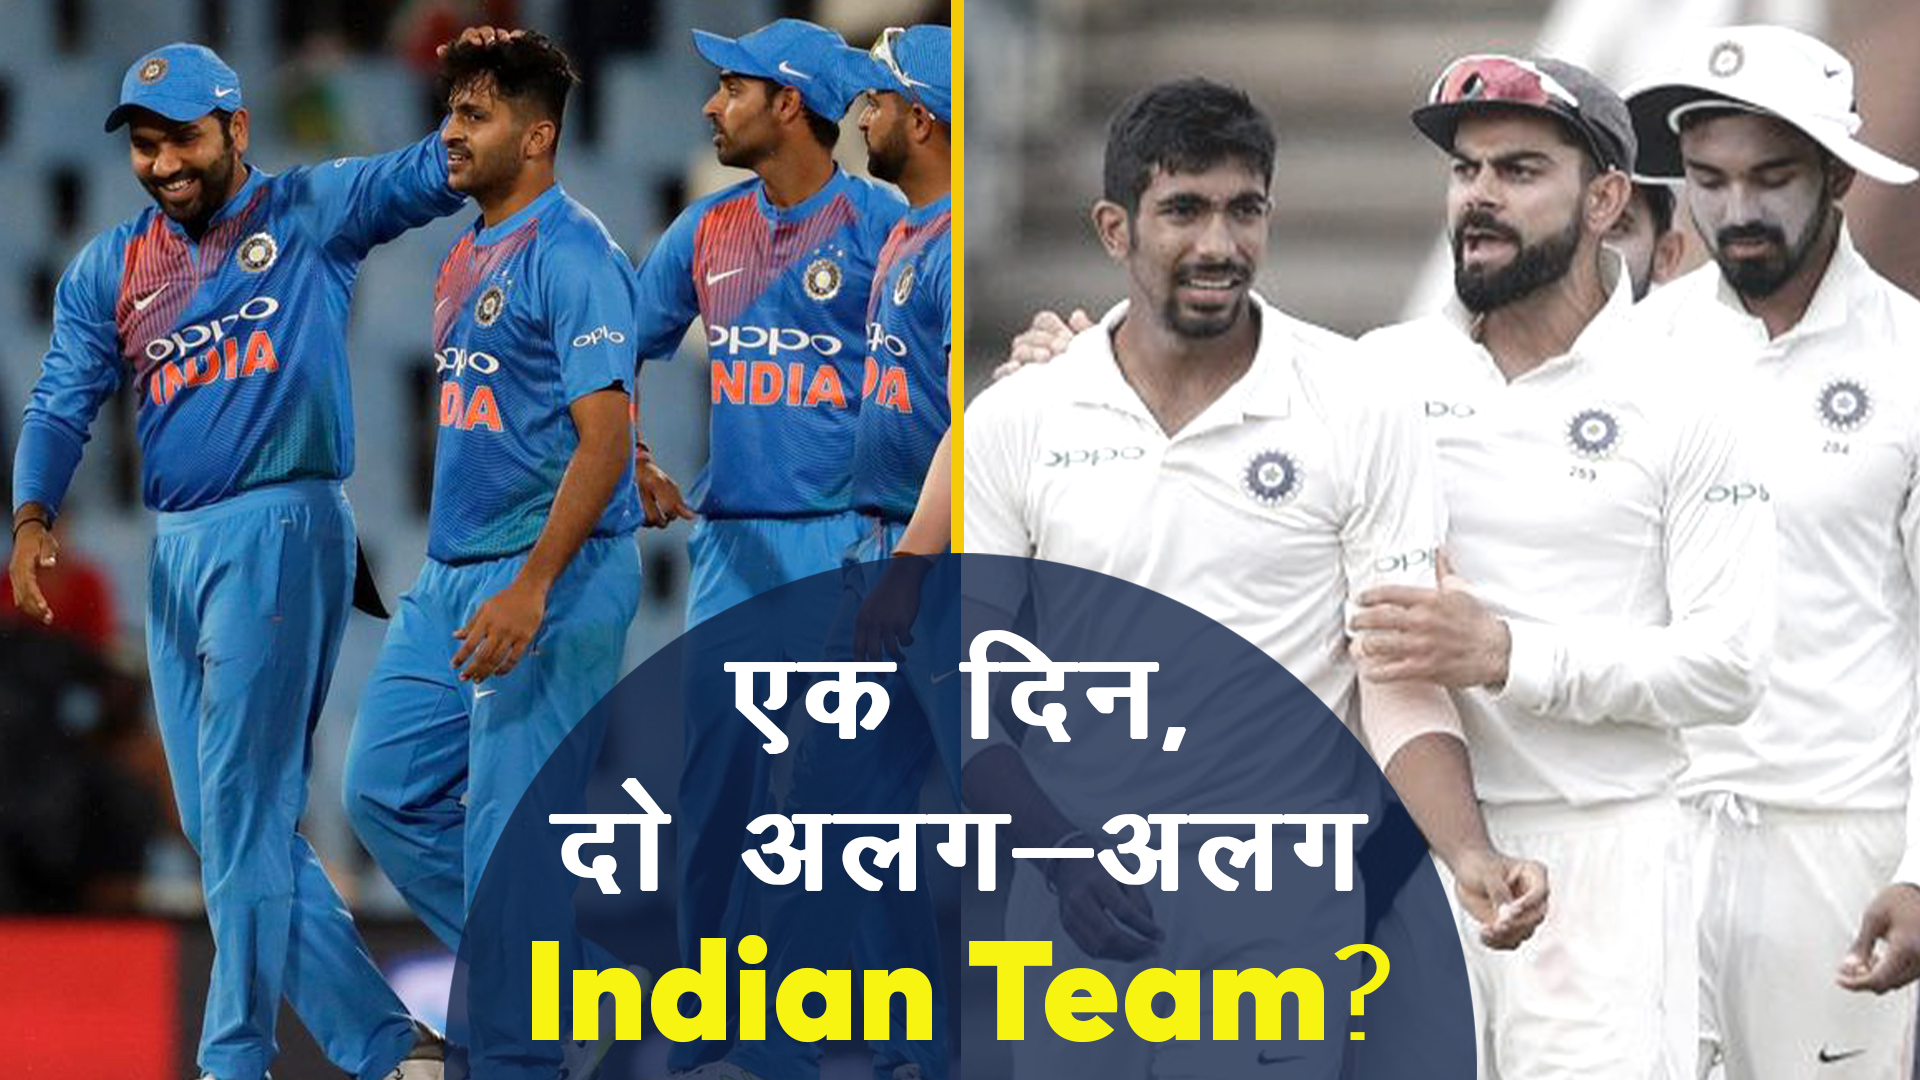 Cricket restart post lockdown and the variables involved for the Indian cricket team